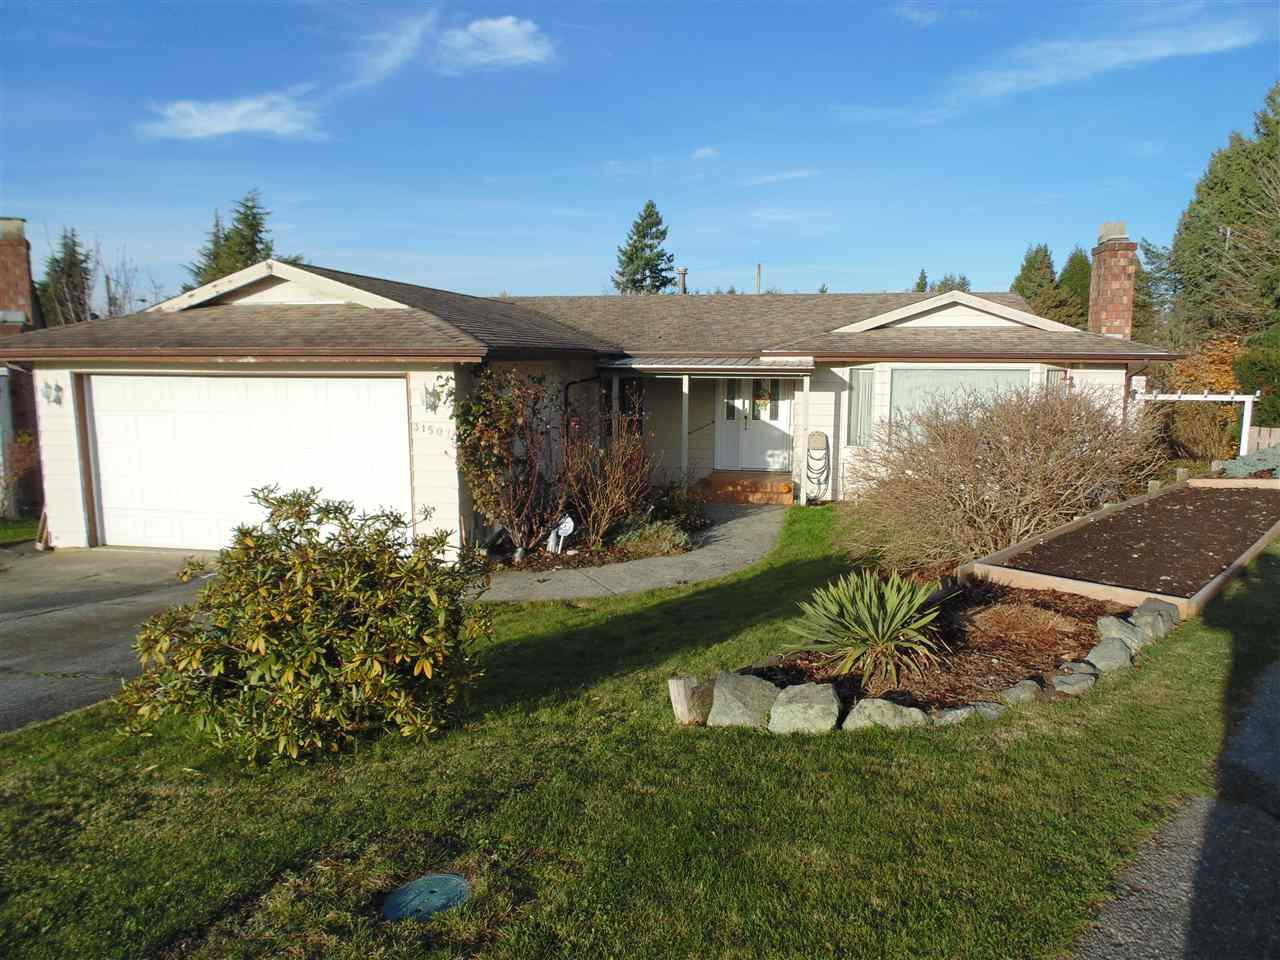 Main Photo: 31507 SUNNYSIDE Court in Abbotsford: Abbotsford West House for sale : MLS®# R2420141